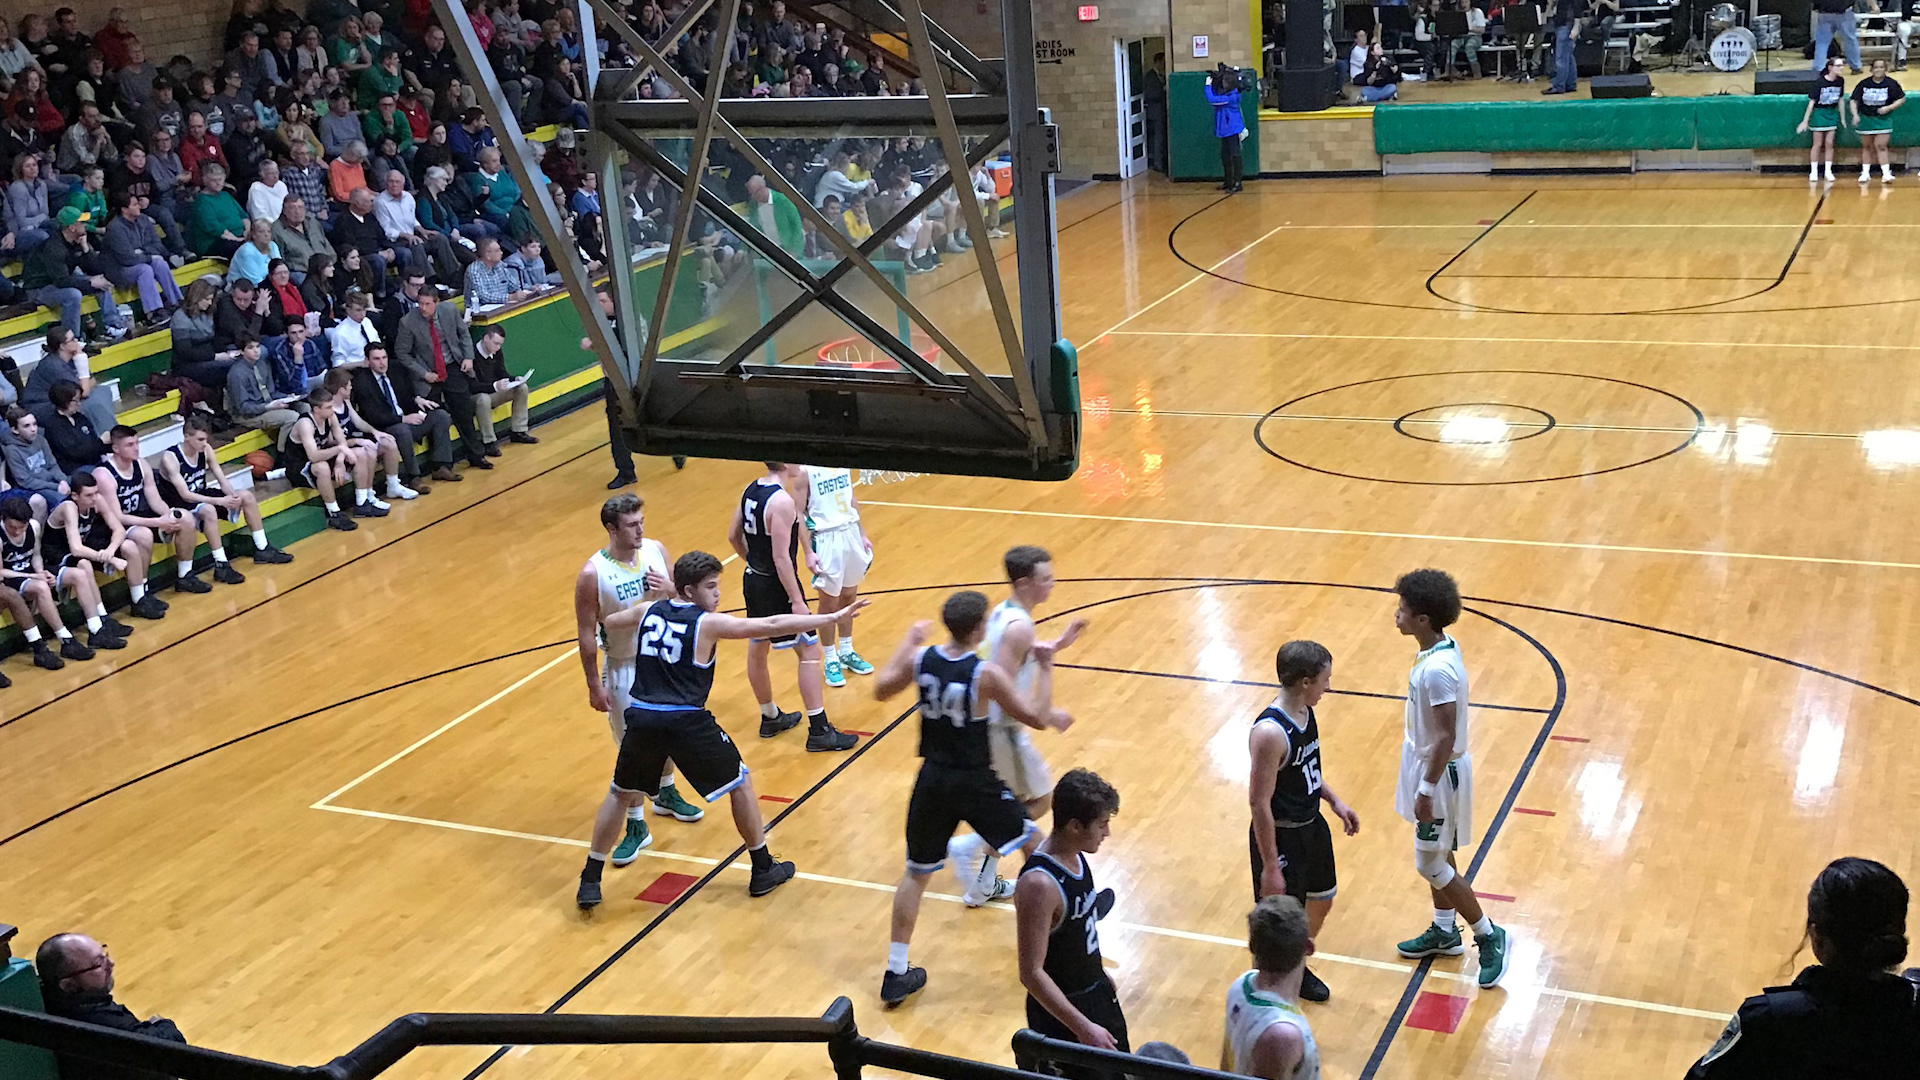 Eastside honors basketball tradition with doubleheader at Old Gym